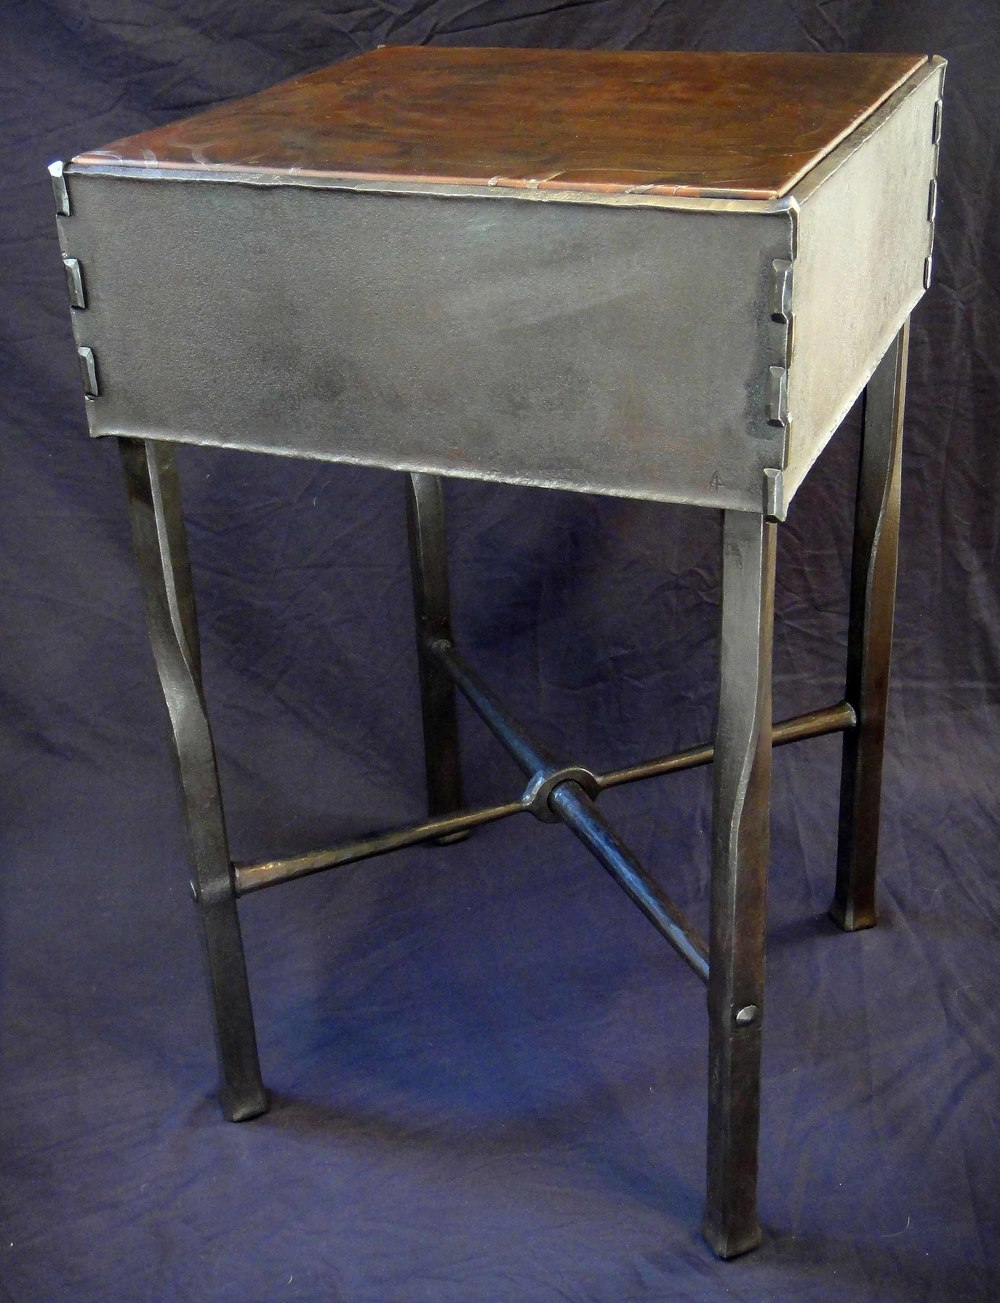 night stand, steel, 2011